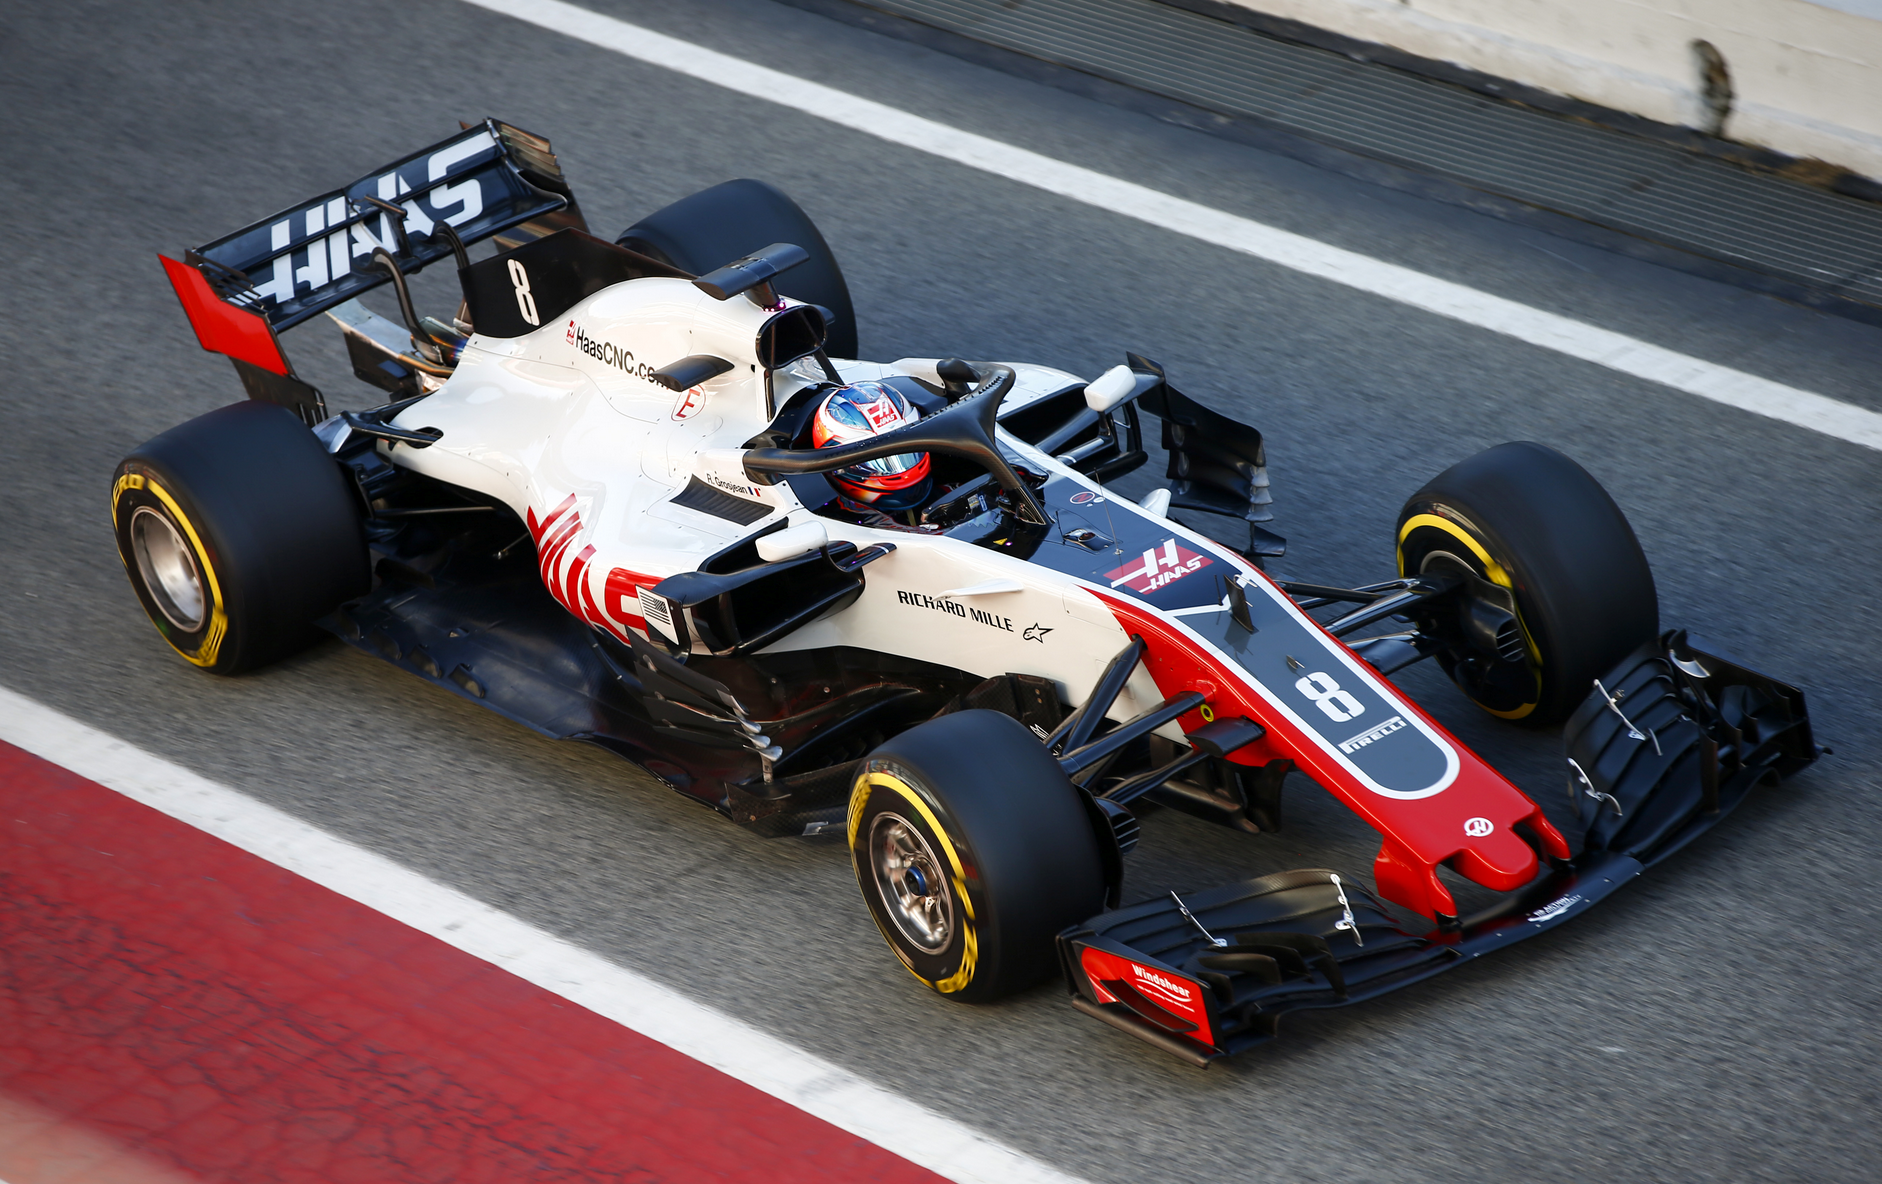 Haas F1 Team: Barcelona Day 4 Recap